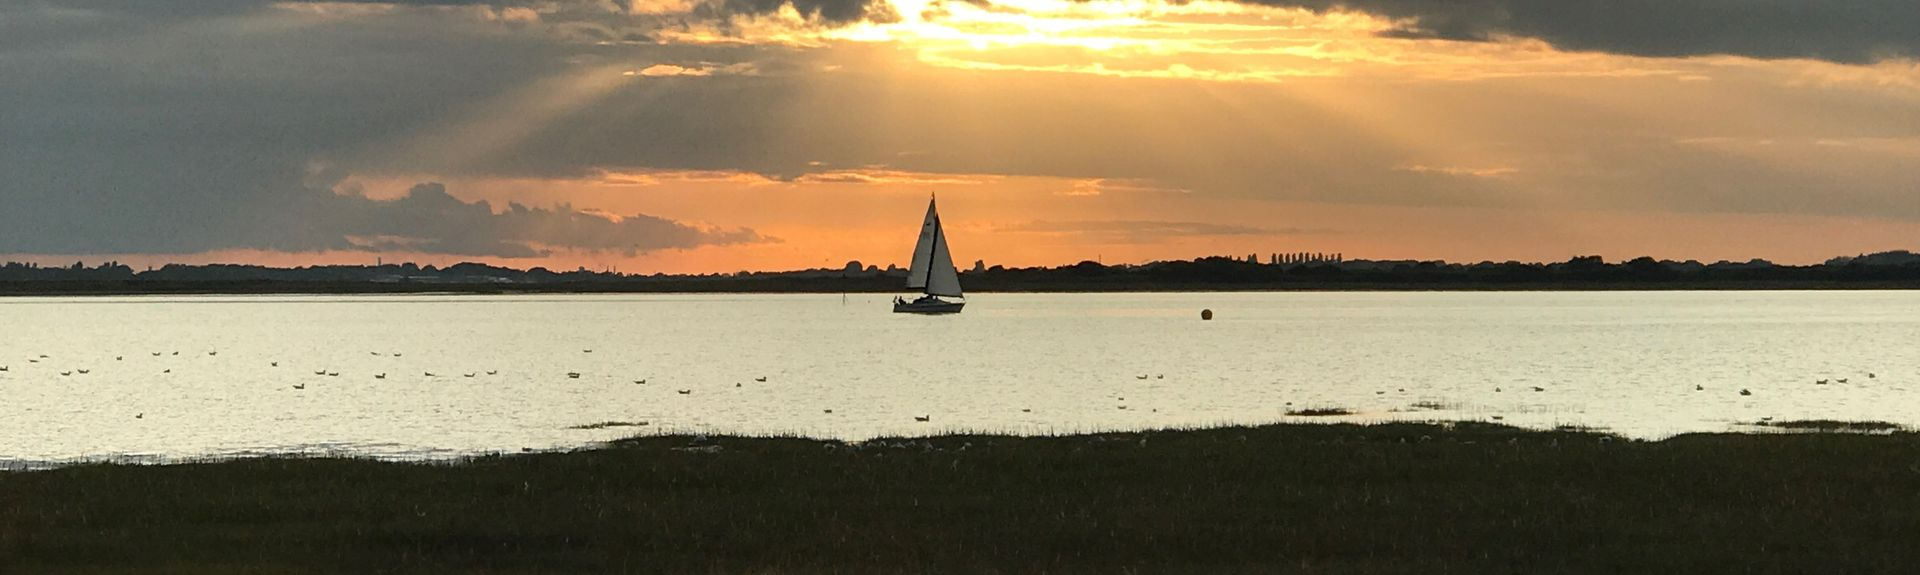 Emsworth, Hampshire, UK